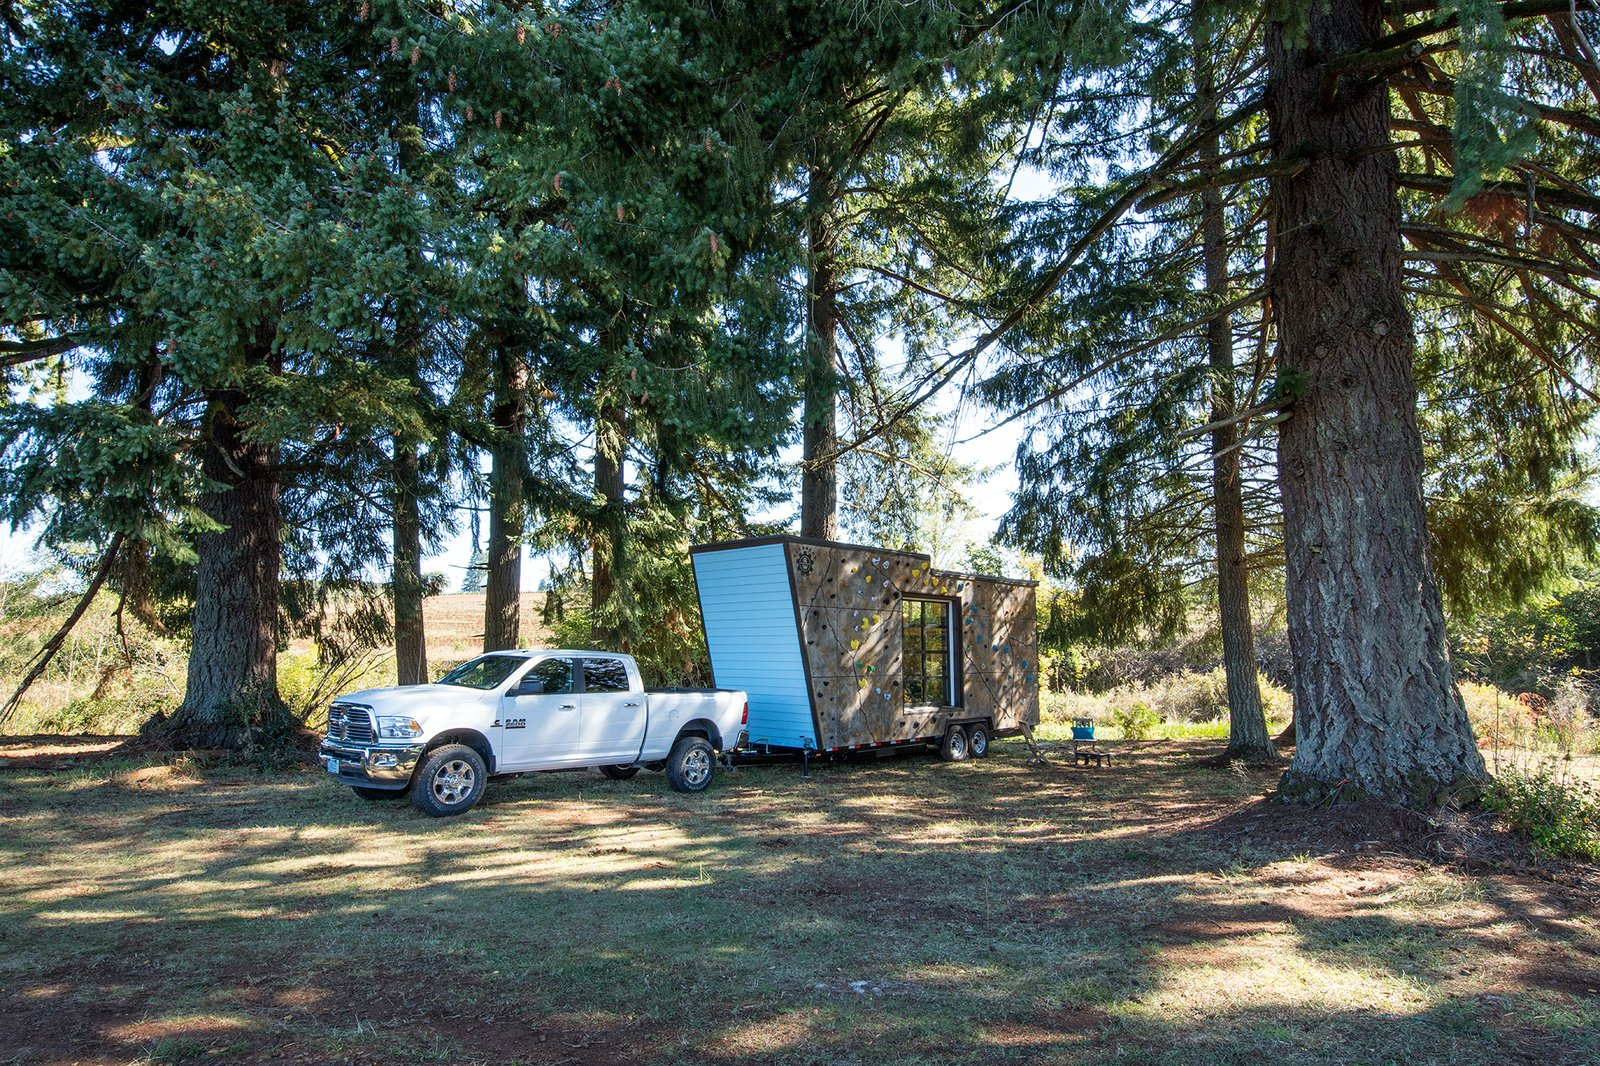 This 28-foot long, towable, double-axle trailer home, has a front façade that's a rock climbing wall.